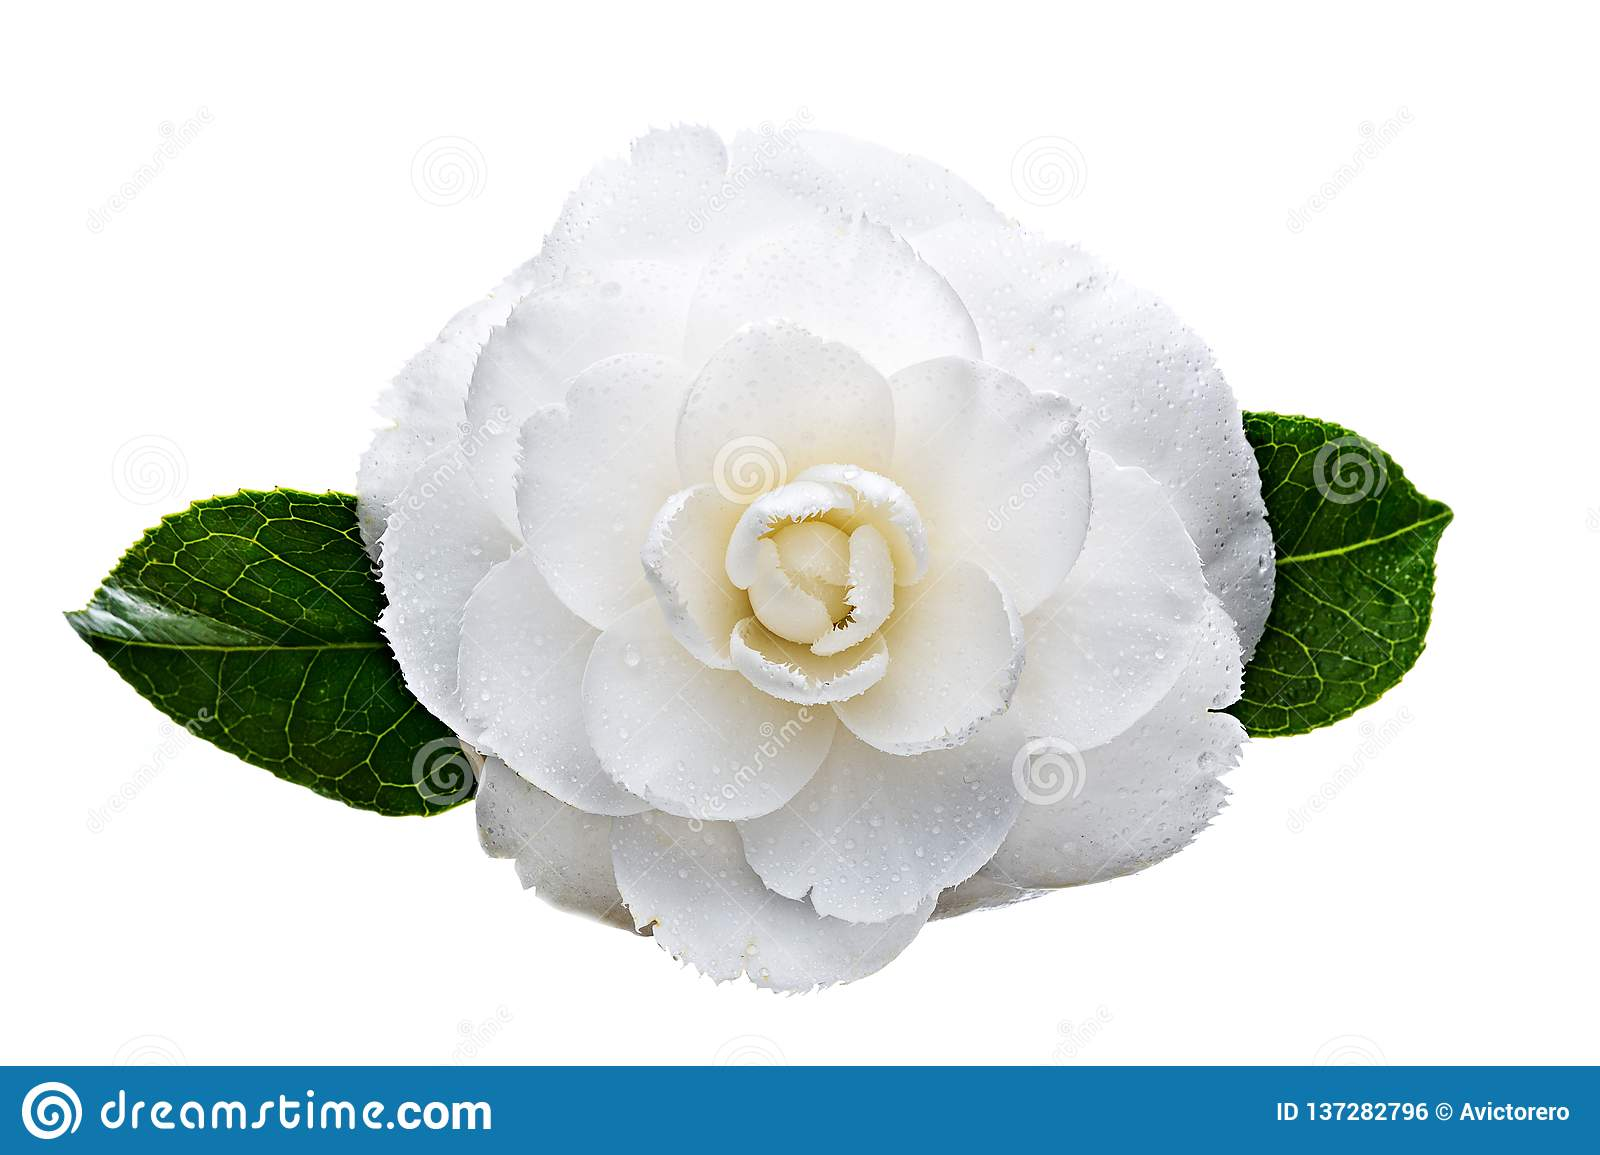 White camellia flower with dew drops isolated on white background